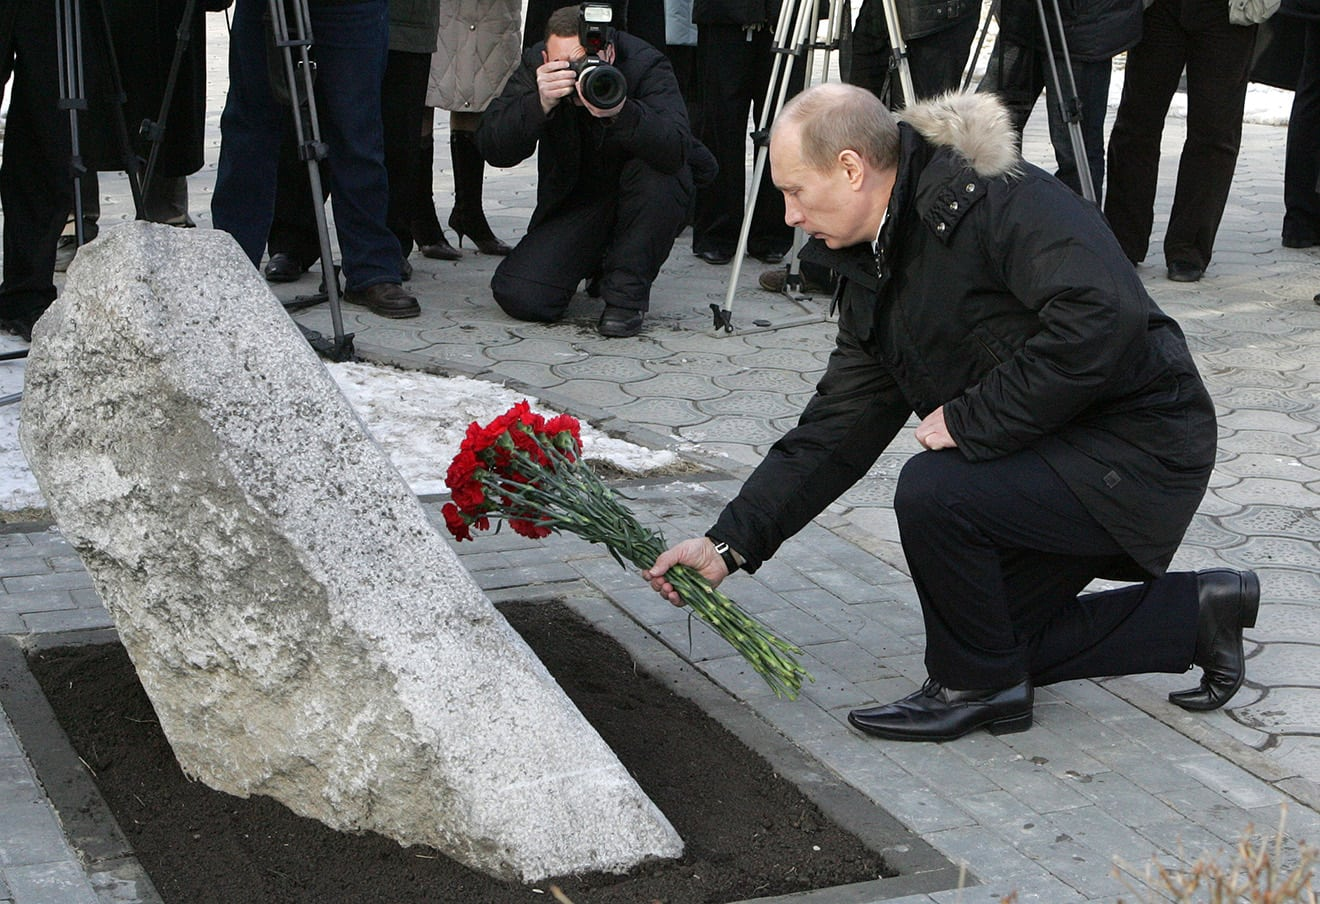 Image Russian president Vladimir Putin lays flowers at a memorial to workers killed in the 1962 Novocherkassk massacre, Feb. 1, 2008. (Photo ITAR-TASS / Mikhail Klimentyev)